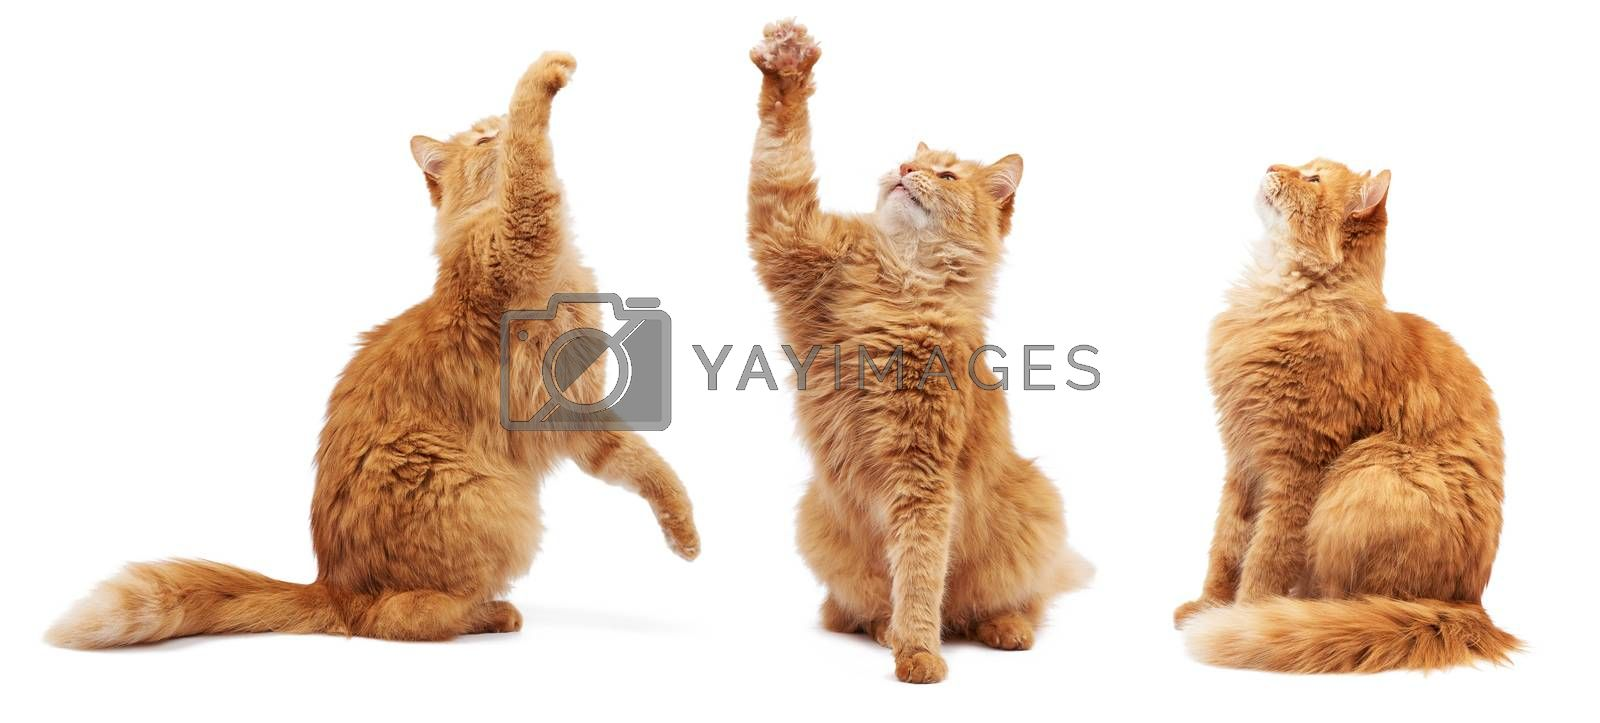 adult fluffy red cat sitting and raised its front paws up, imitation of holding any object, the cat sits sideways and looks up, animal isolated on a white background